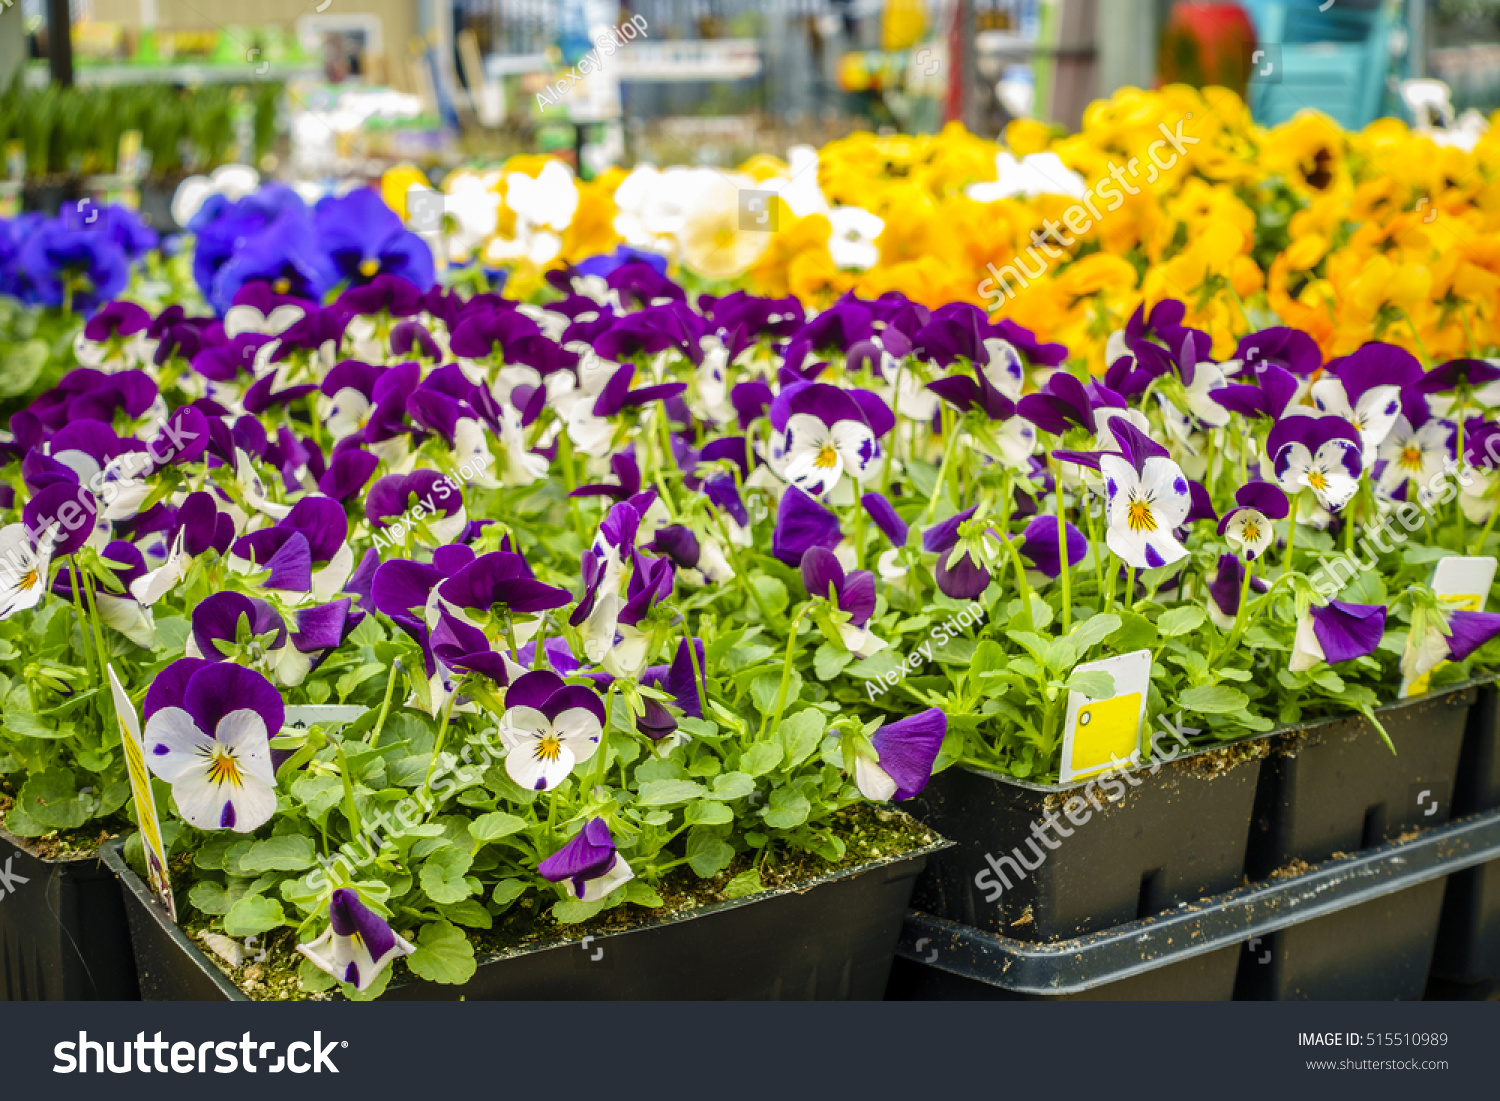 Potted Flowers Plants On Display Home Stock Photo Royalty Free